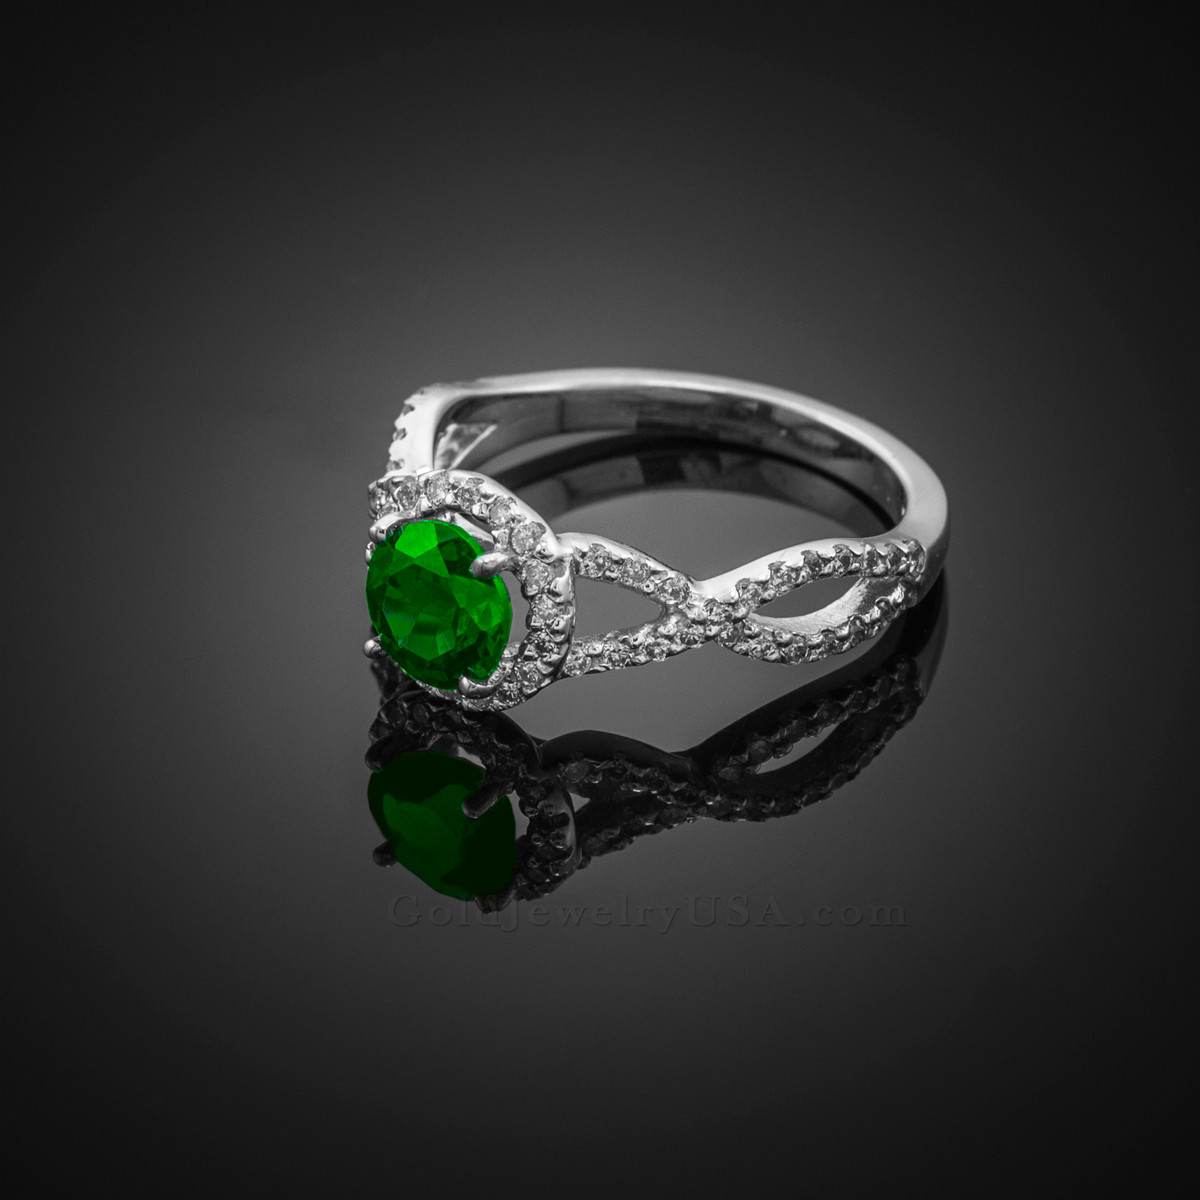 fbx ring infinity jewelry print engagement cgtrader models rings model stl